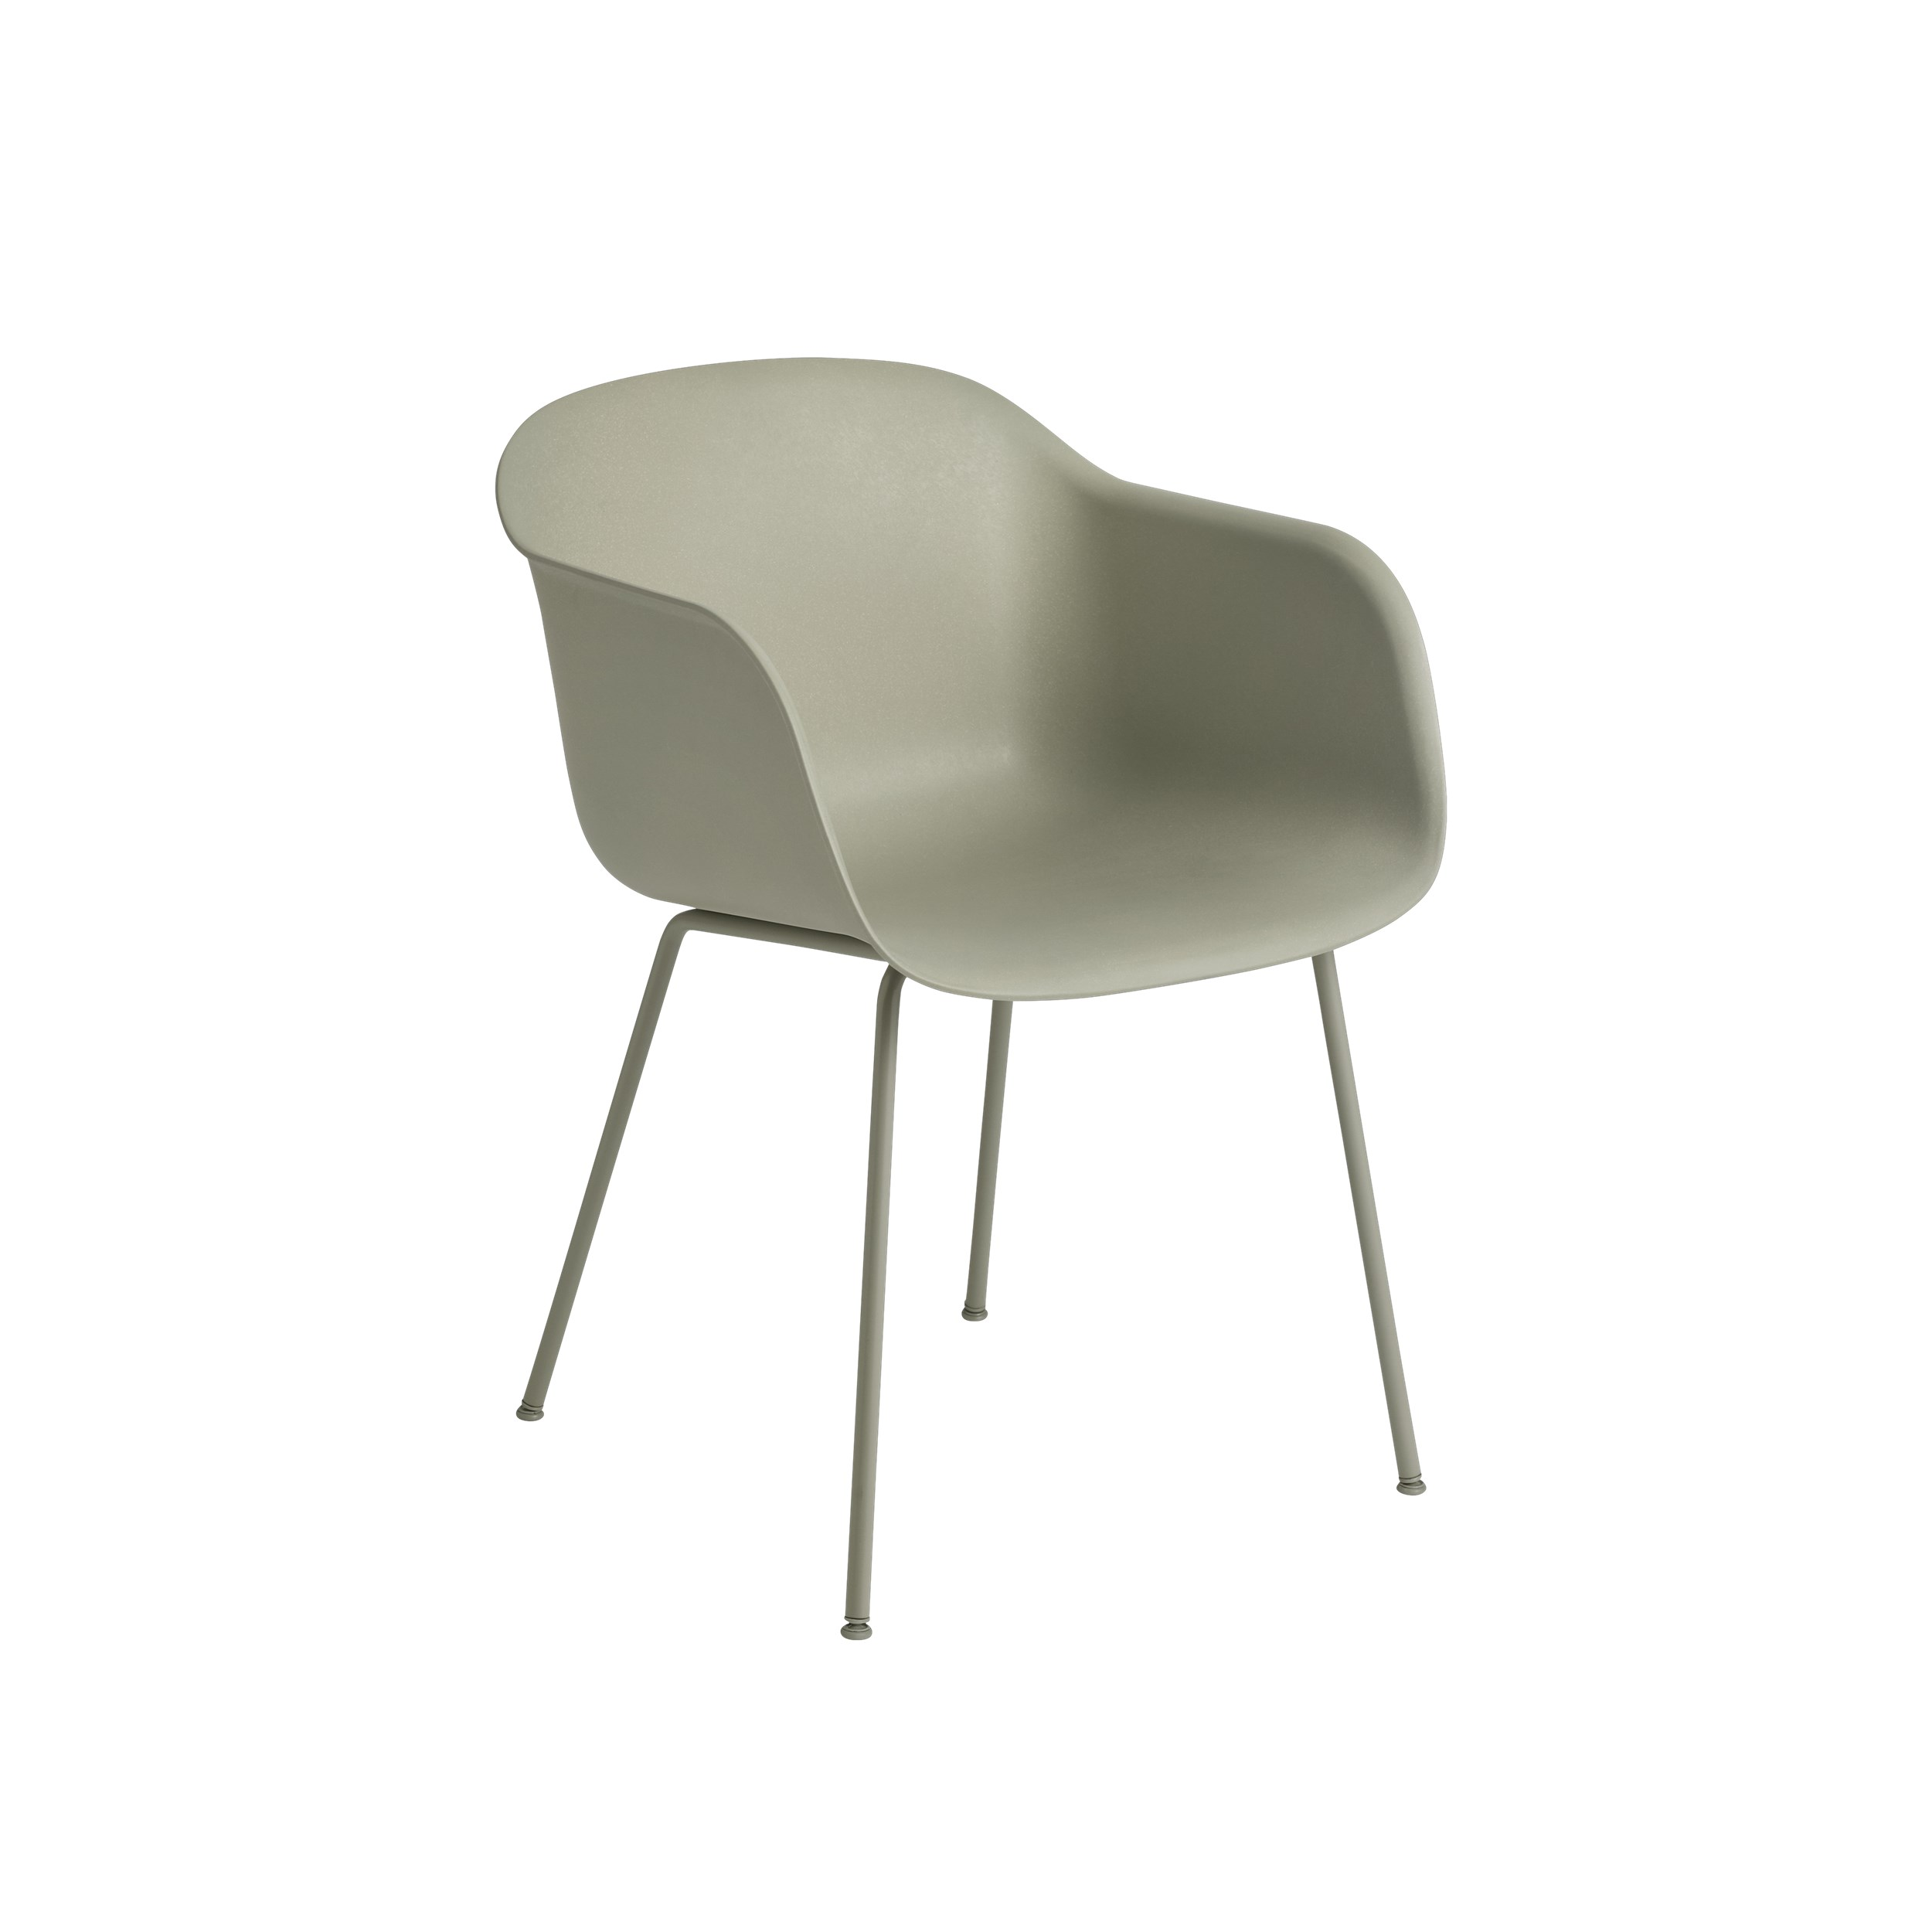 Muuto Fiber Armchair Tube Base Dusty Green/Dusty Green